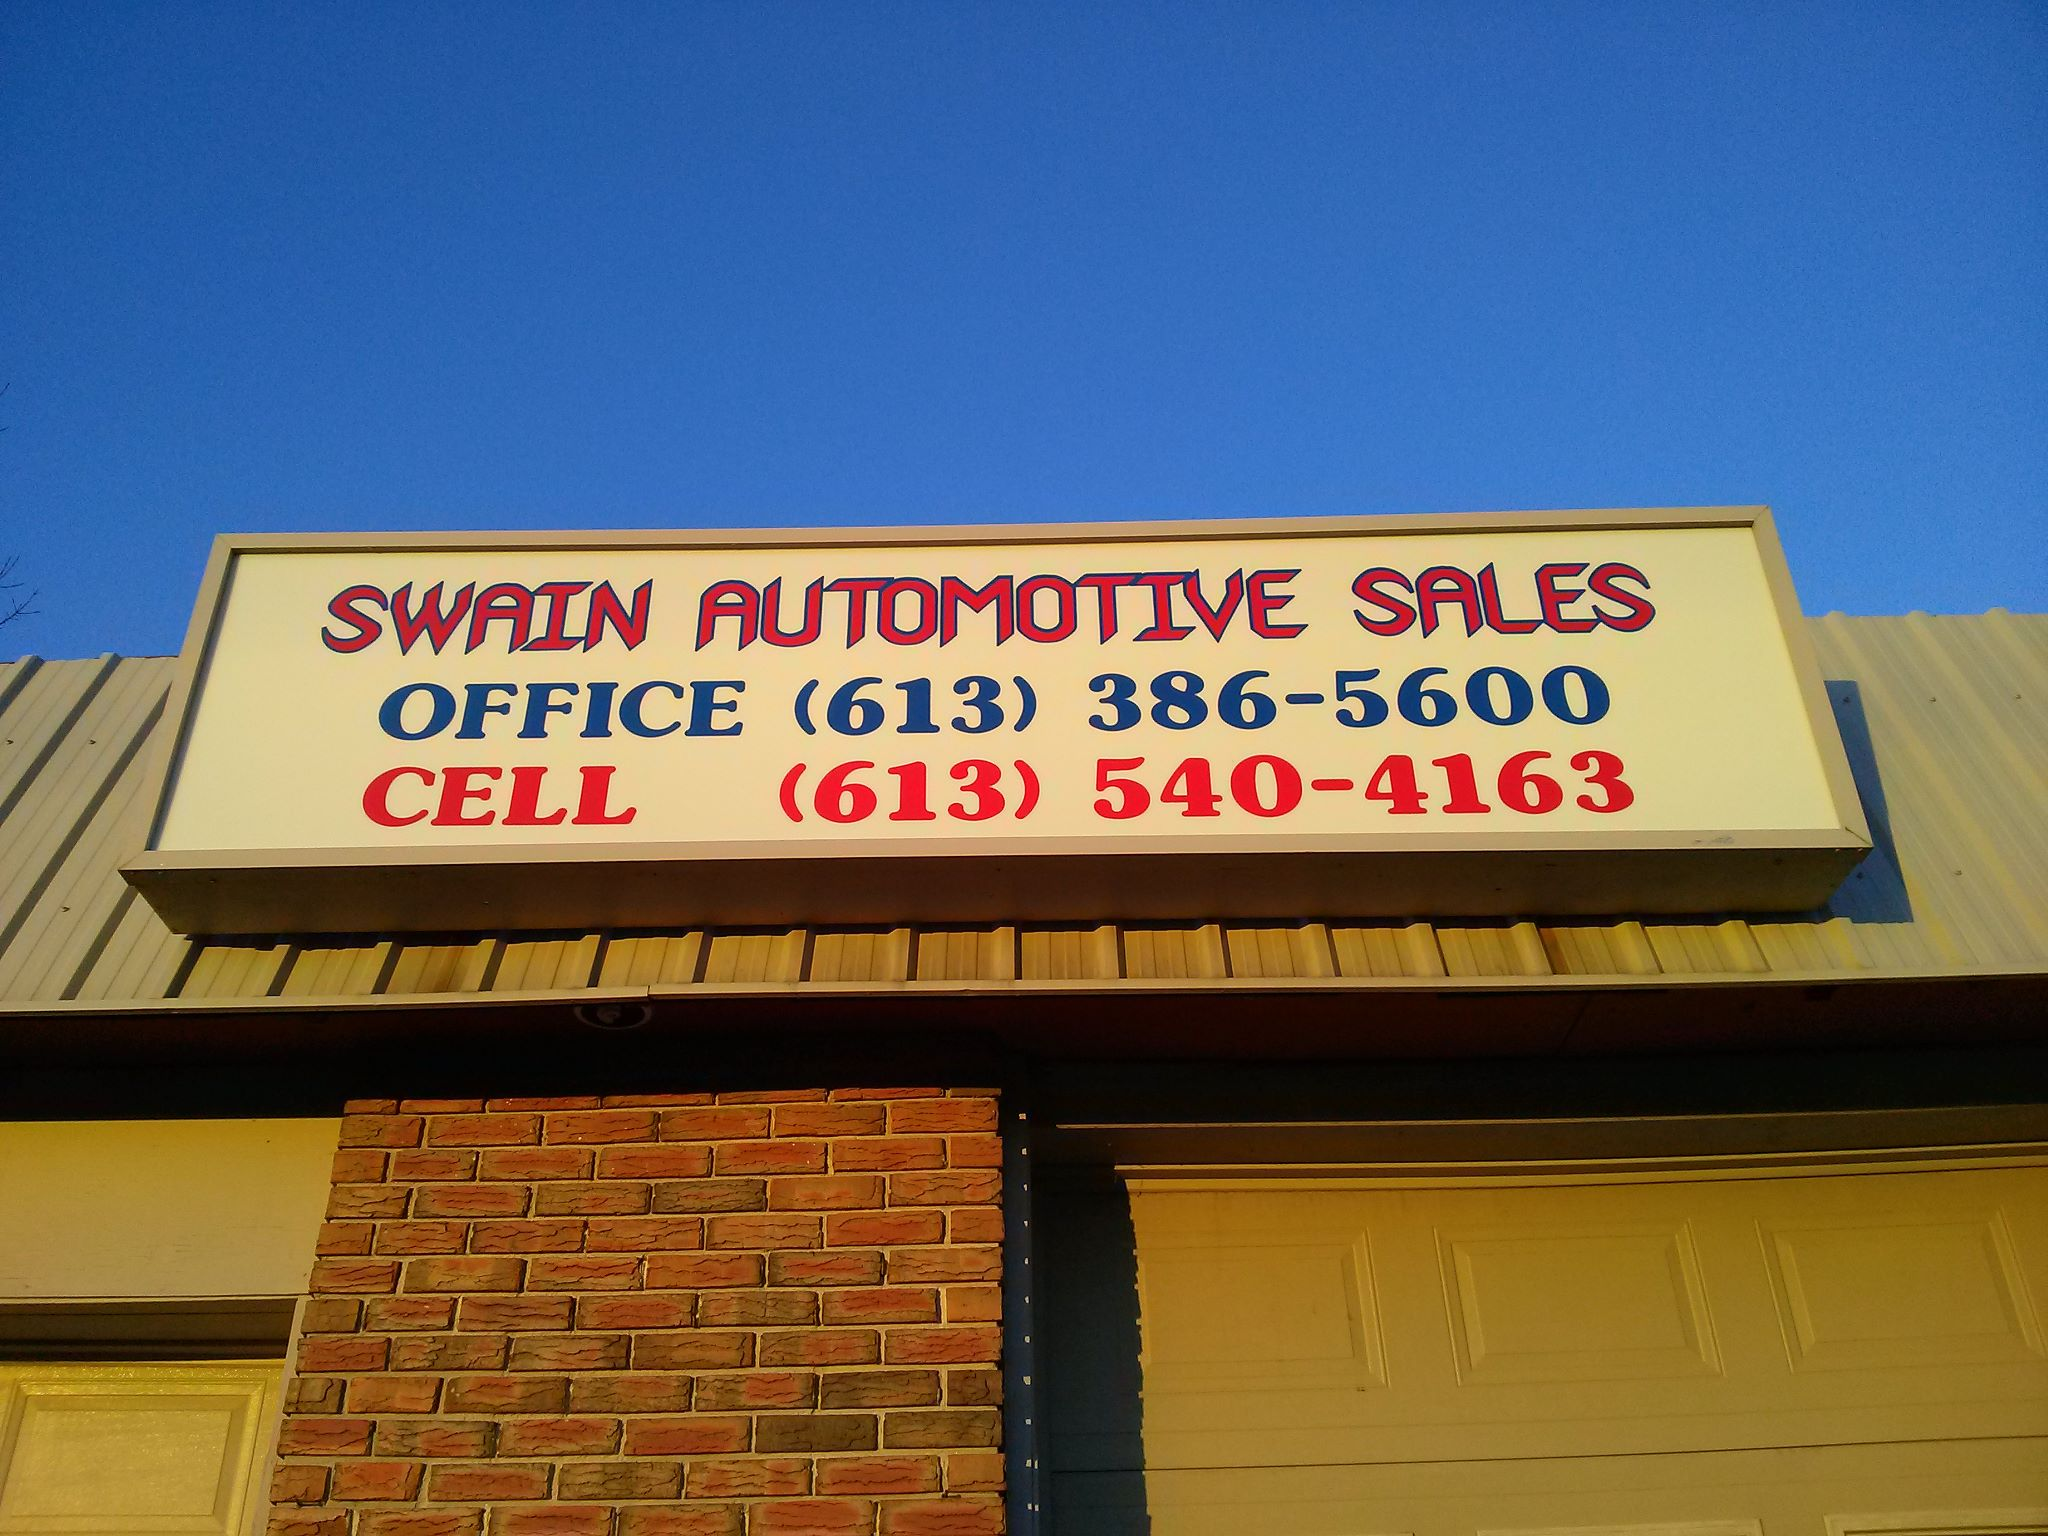 Swain Auto Sales in Odessa Ontario and Used Car Sales and quality auto sales - Buy used cars from a quality company. 1593 County Rd 4 Kingston, ON (613) 386-5600